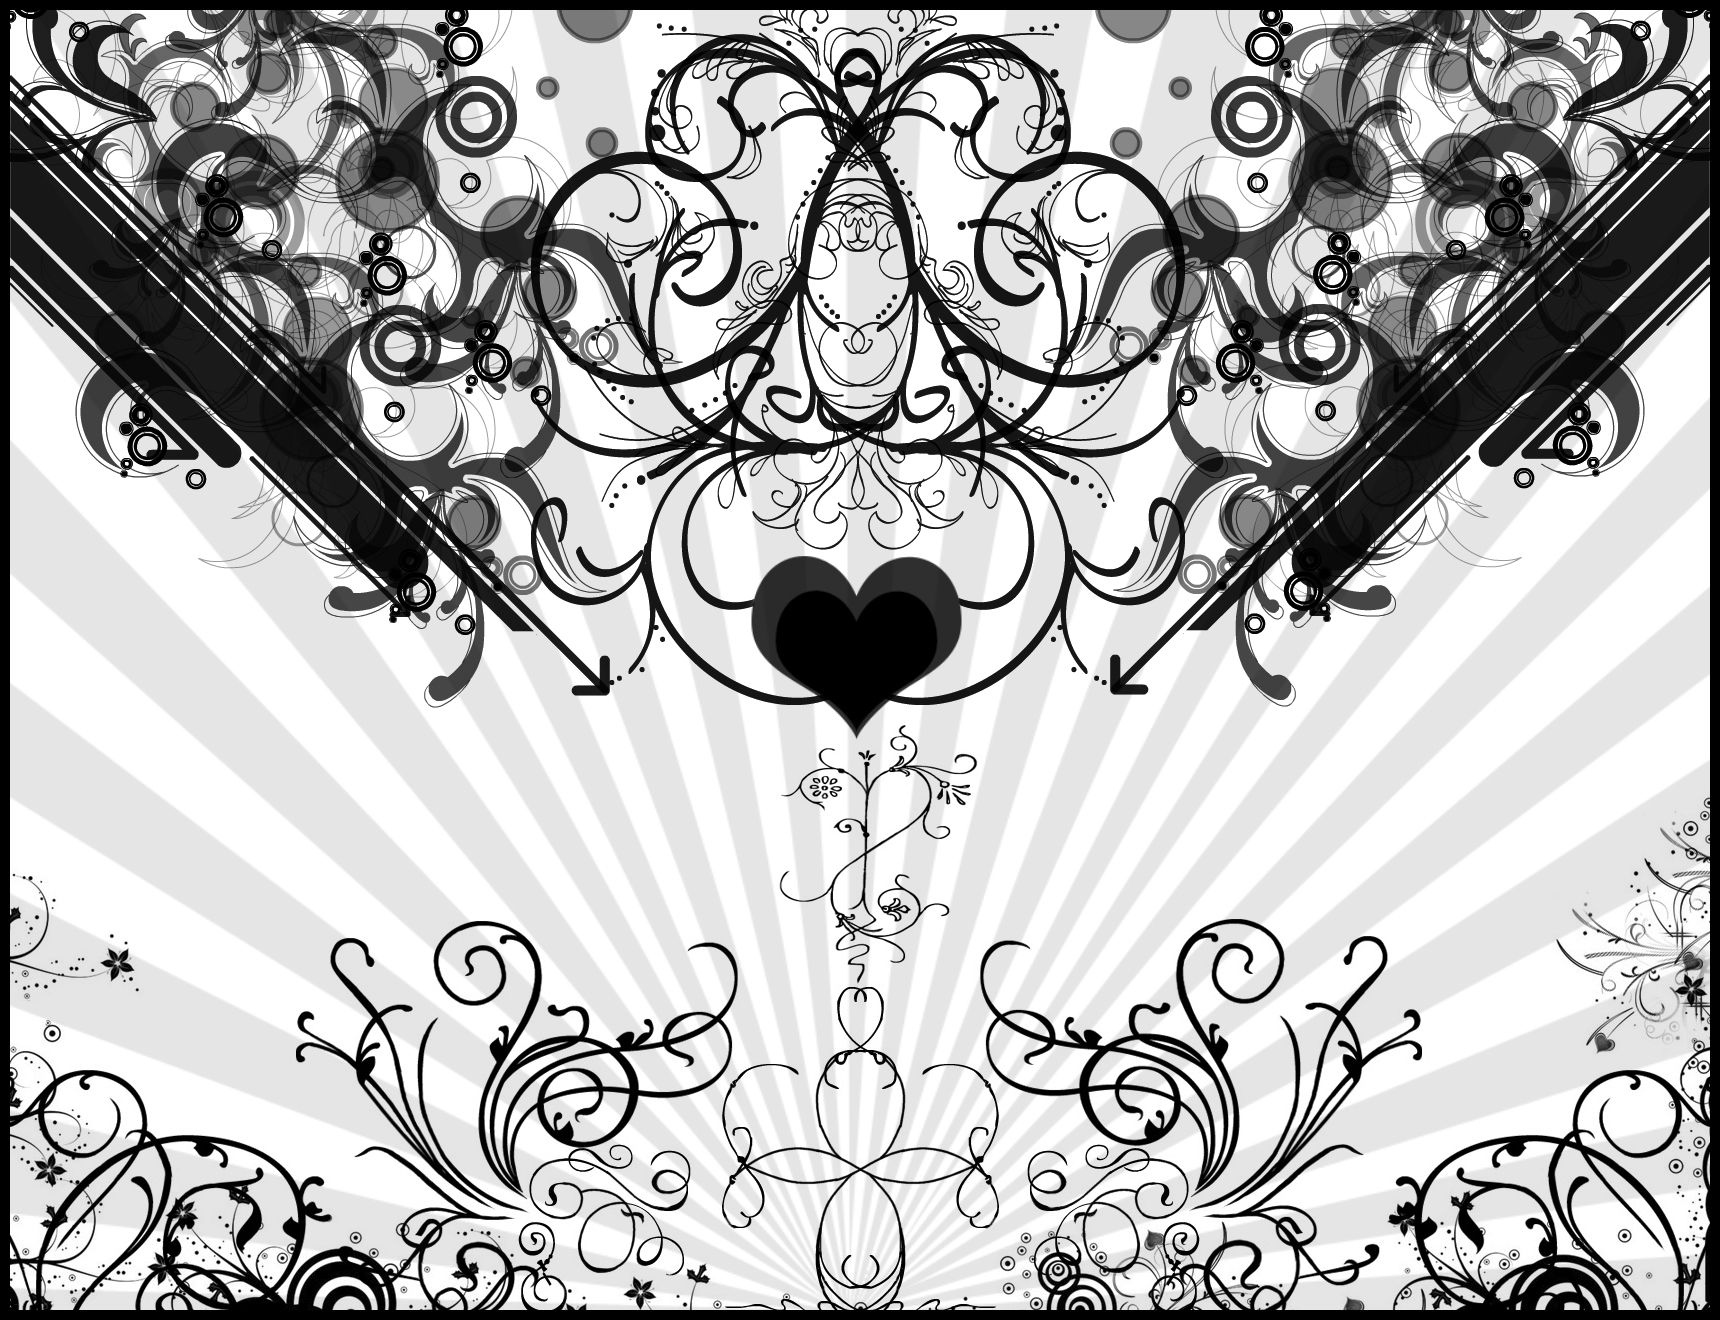 Black And White Love Heart Wallpaper : HD Heart Wallpapers Love Wallpapers car,Disney cartoon Wallpaper Biography Pictures Pics Images ...